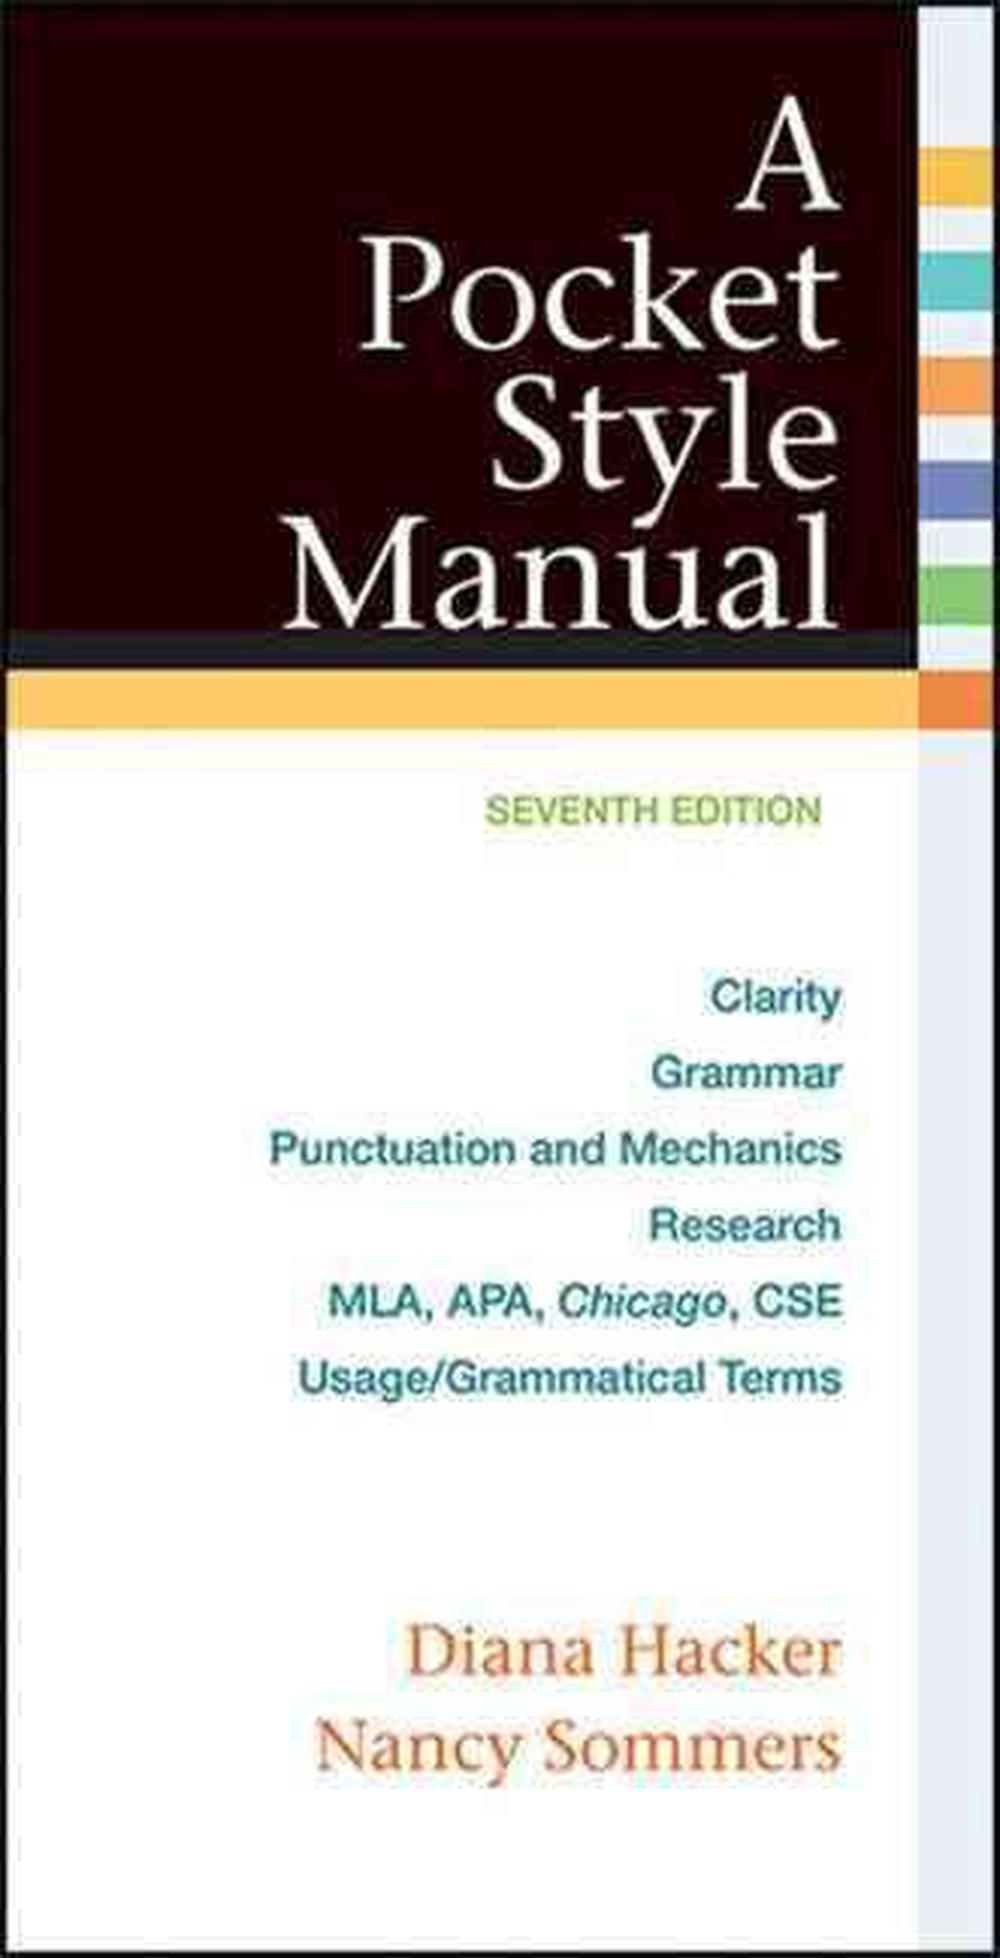 Manual epub rc410-m